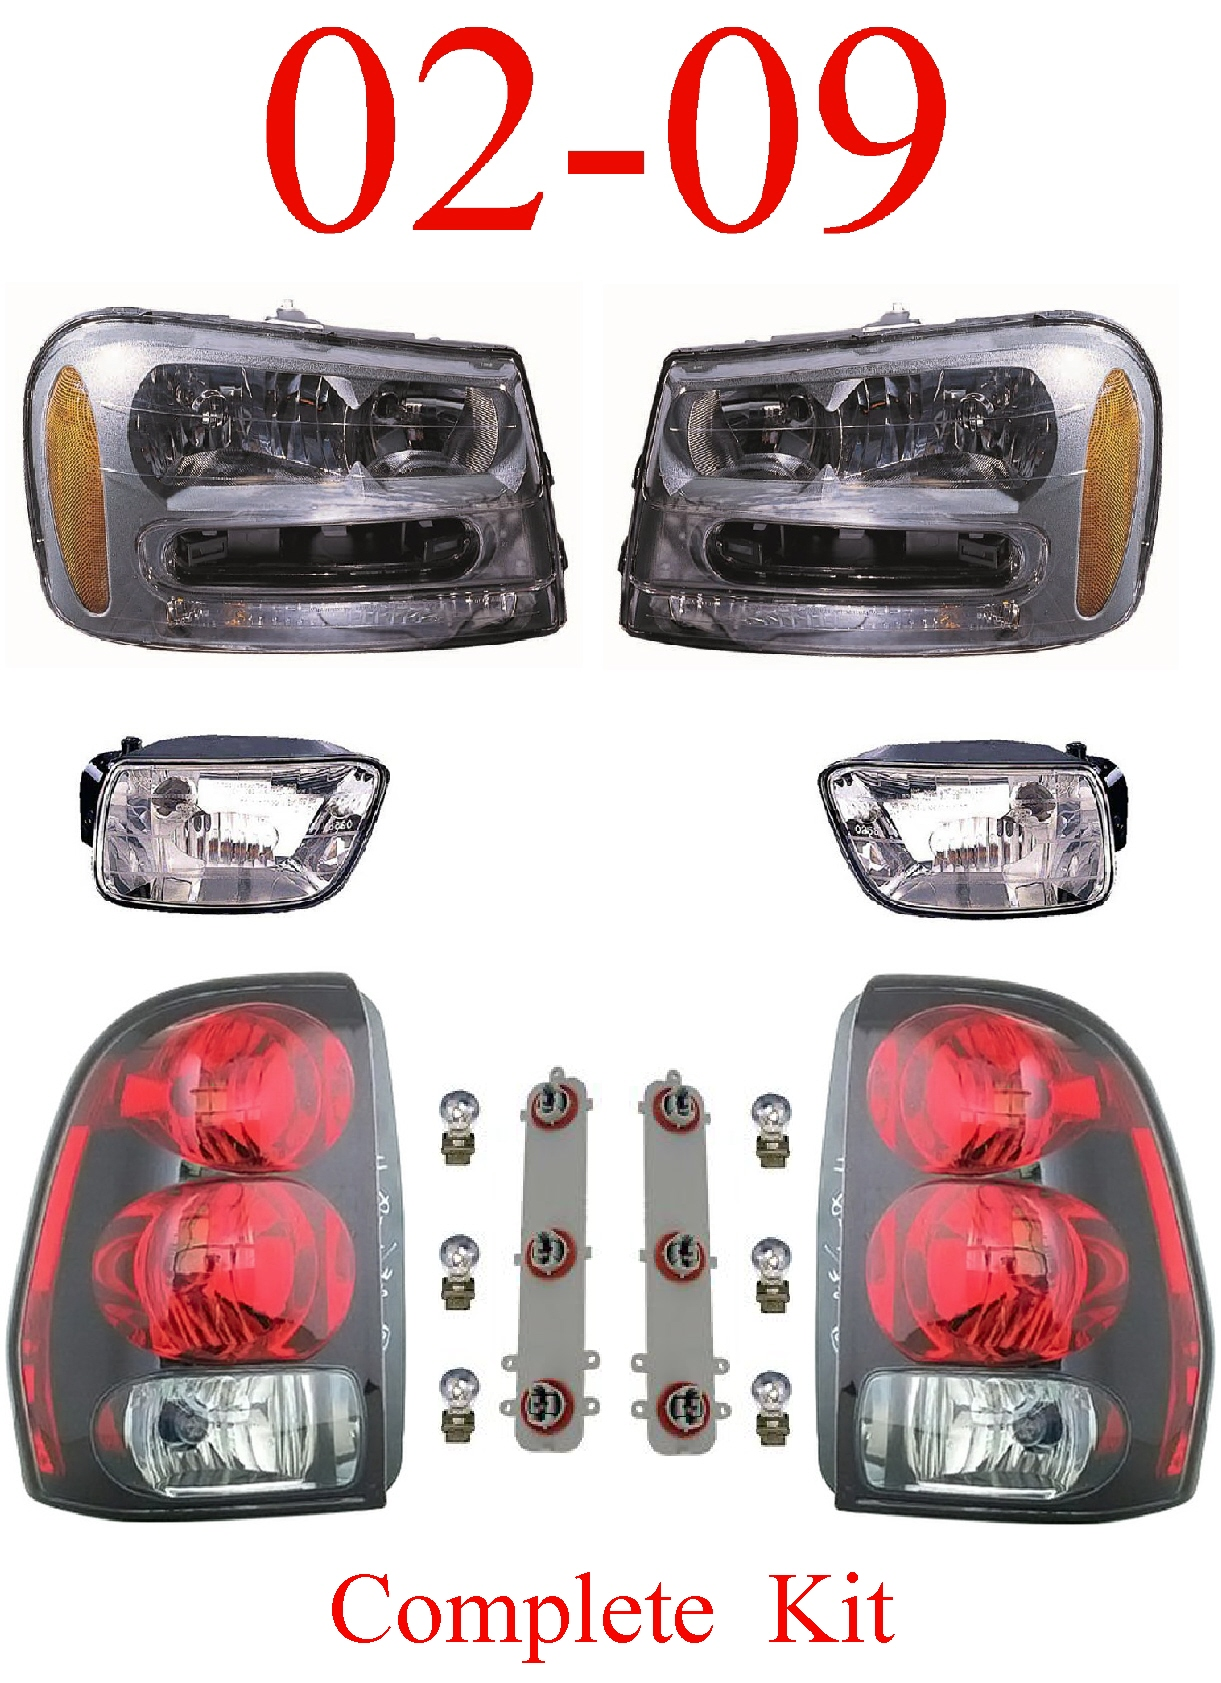 02-09 Trailblazer 6Pc Head, Fog & Tail Light Assembly